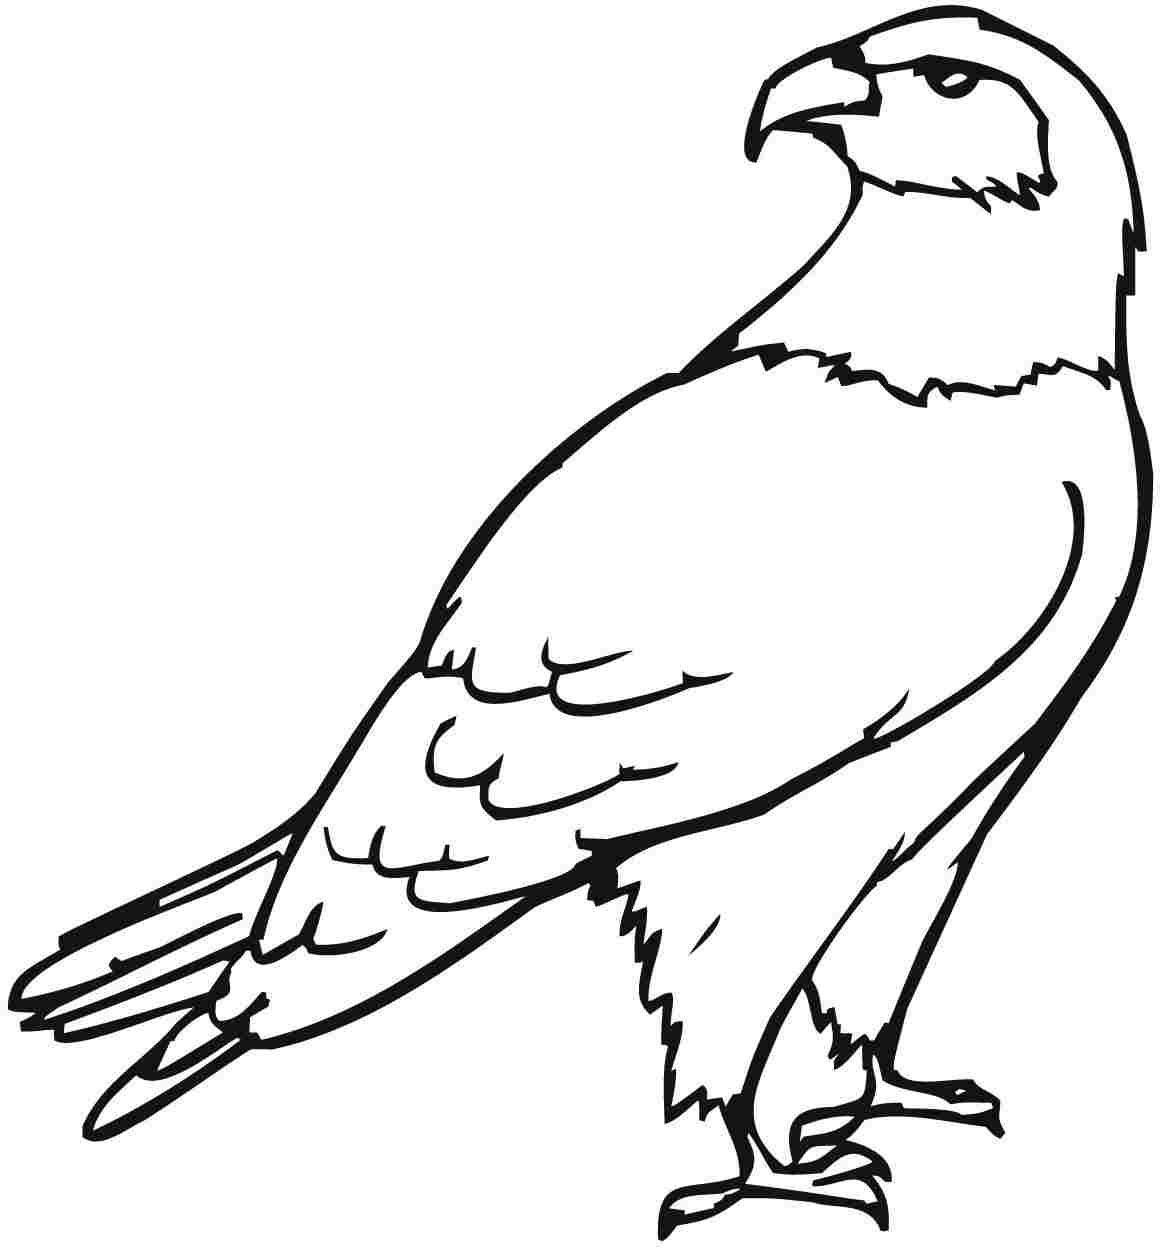 Printable Eagle Coloring Pages Bird Coloring Pages Coloring Pages Easy Coloring Pages